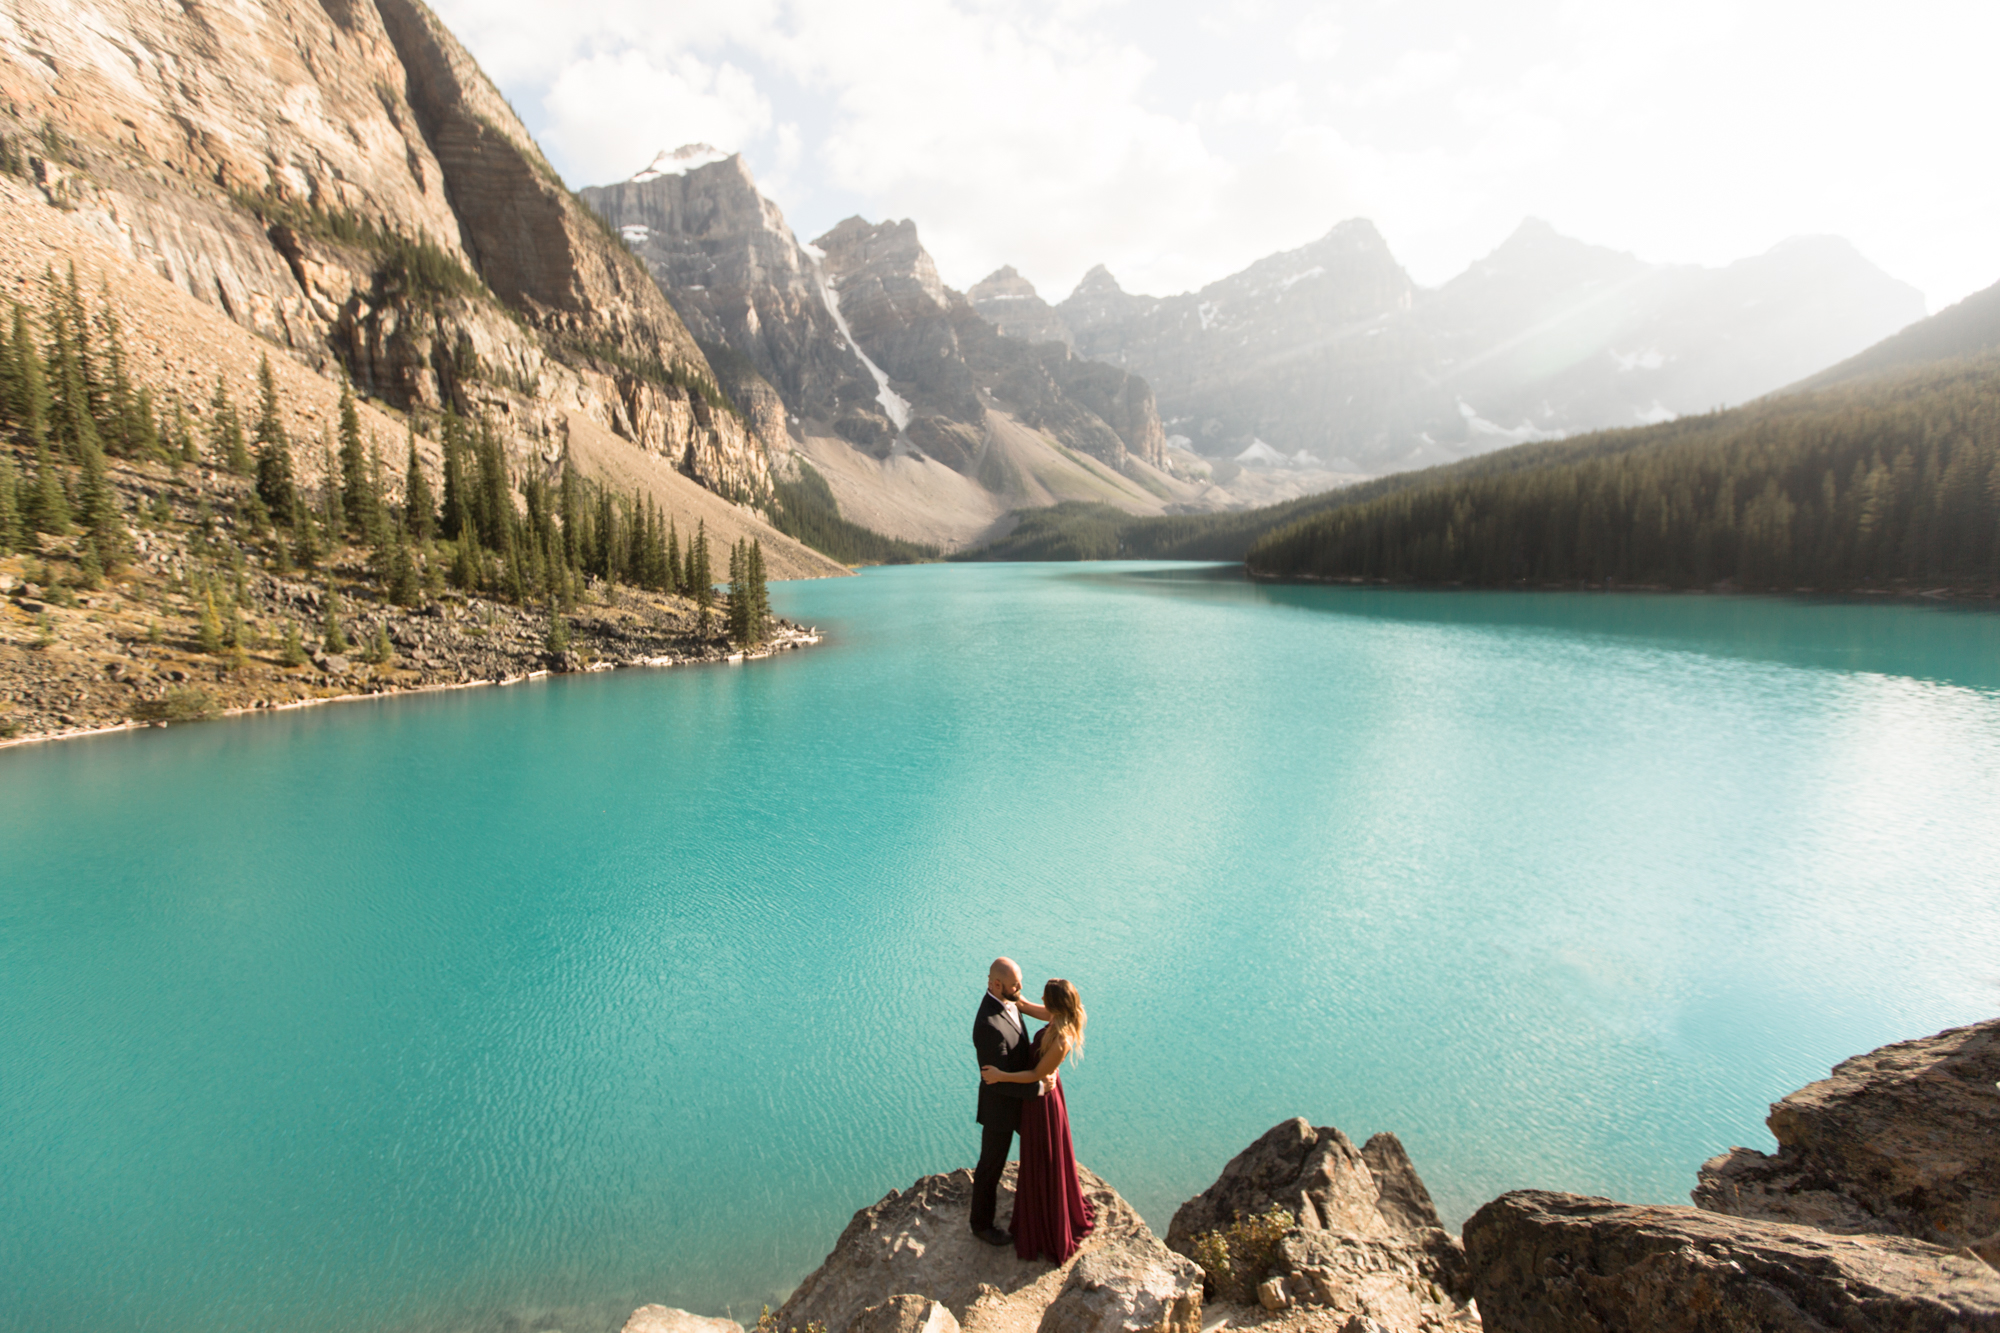 194Willow_and_Wolf_Photography_Sarah_and_Karman_Engagement_Banff-367Willow_and_Wolf_Photography_Sarah_and_Karman_Engagement_Banff-BEC_2456-Edit